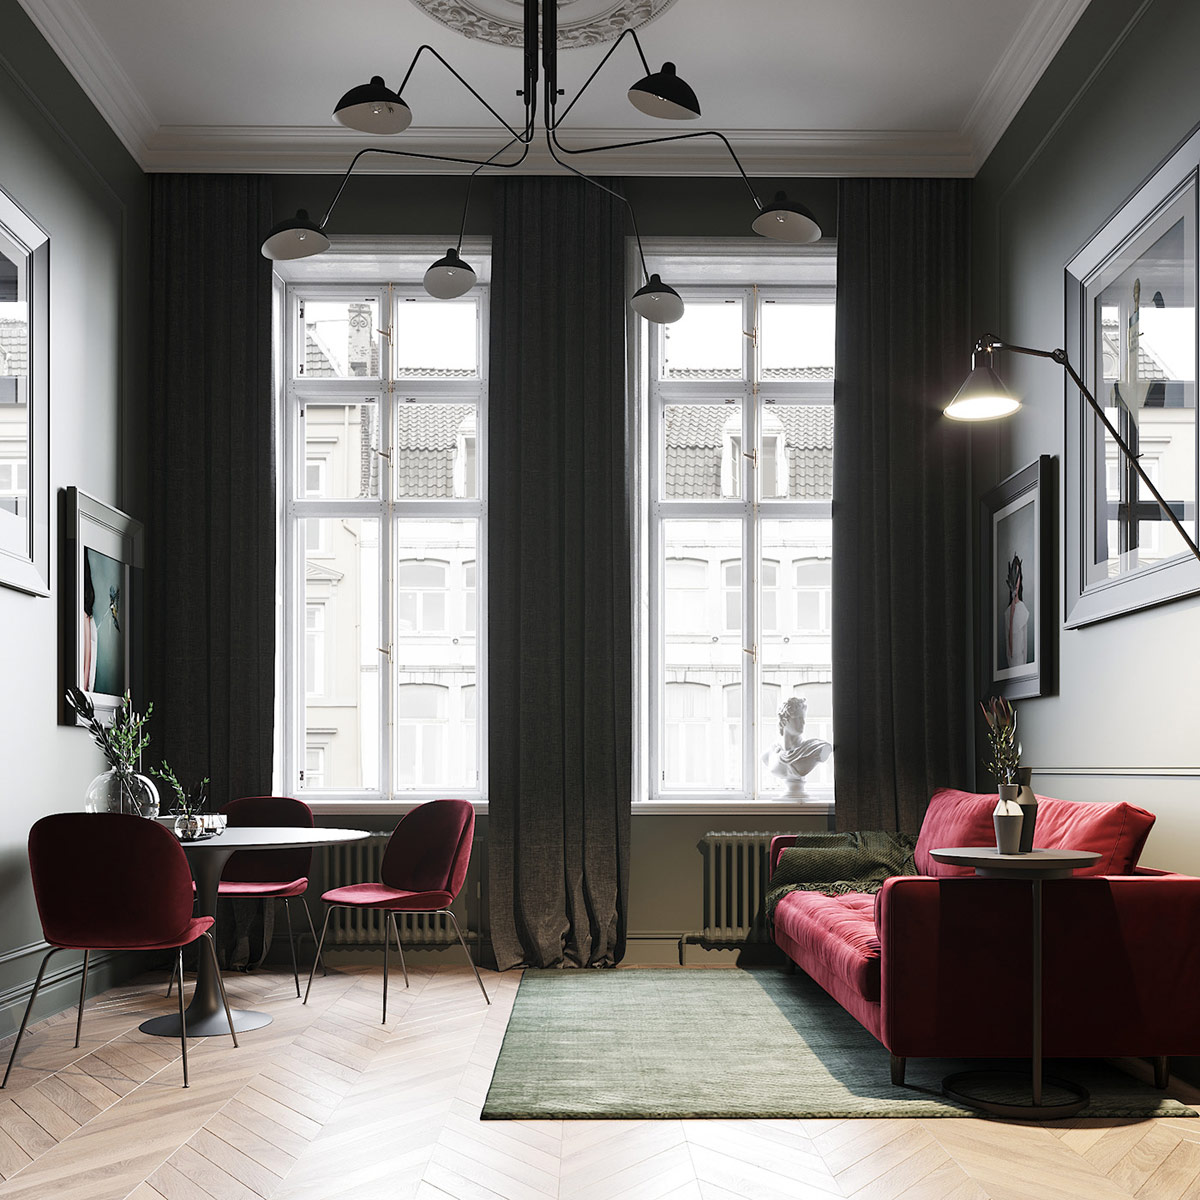 4 Interiors That Show How To Use Red And Green In A Non Clashing Way